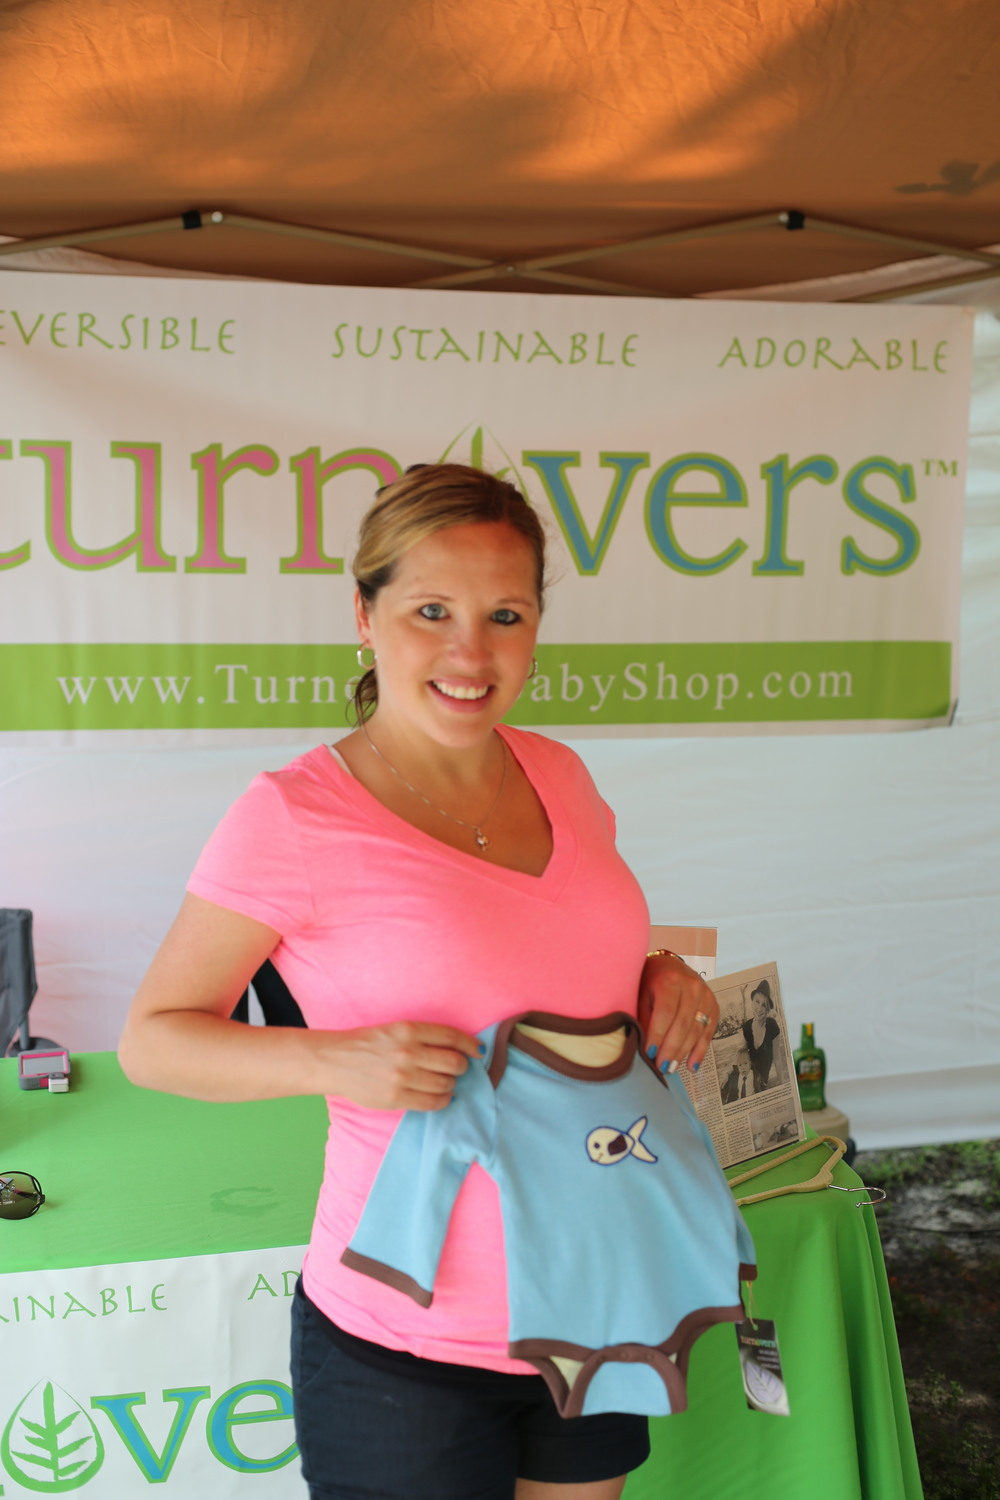 This beautiful mom-to-be stopped by our tent to check out options for her little guy